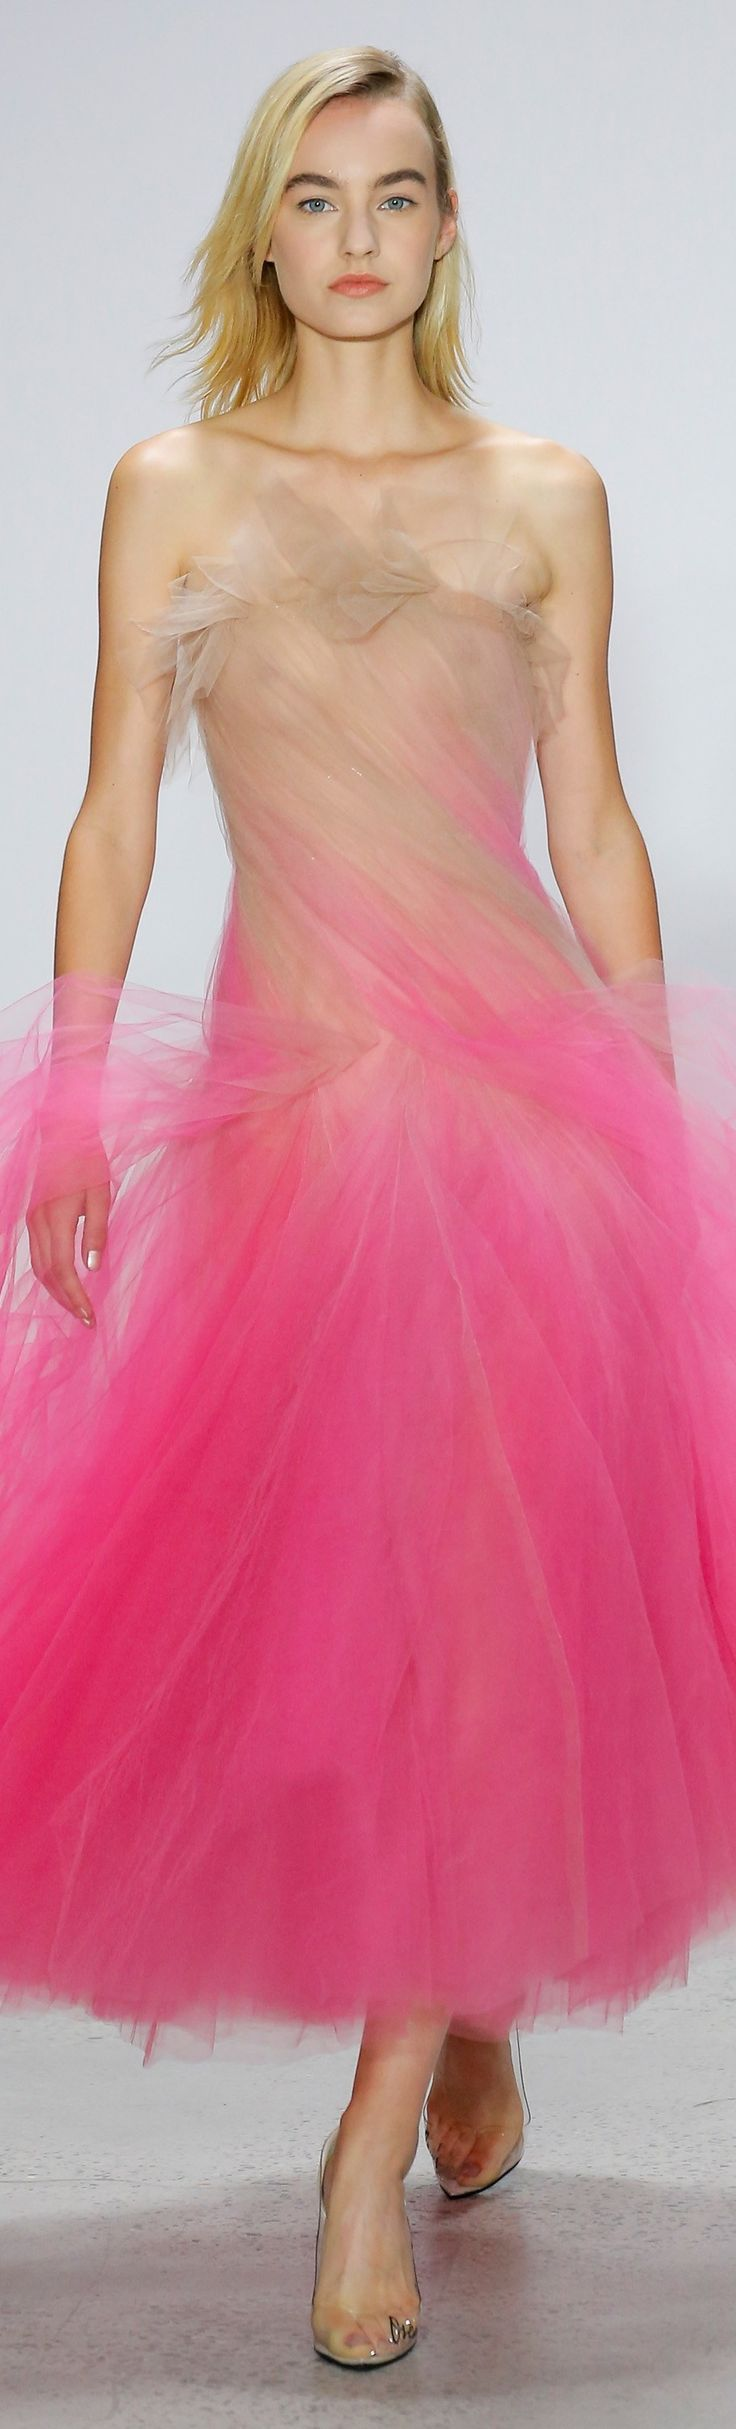 Spectacular pink ombre tulle dress by Oscar de la Renta new for Spring 2018. Enjoy RUSHWORLD boards, UNPREDICTABLE WOMEN HAUTE COUTURE, WEDDING GOWN HOUND and LULU'S FUNHOUSE. Follow RUSHWORLD! We're on the hunt for everything you'll love! #UnpredictableW